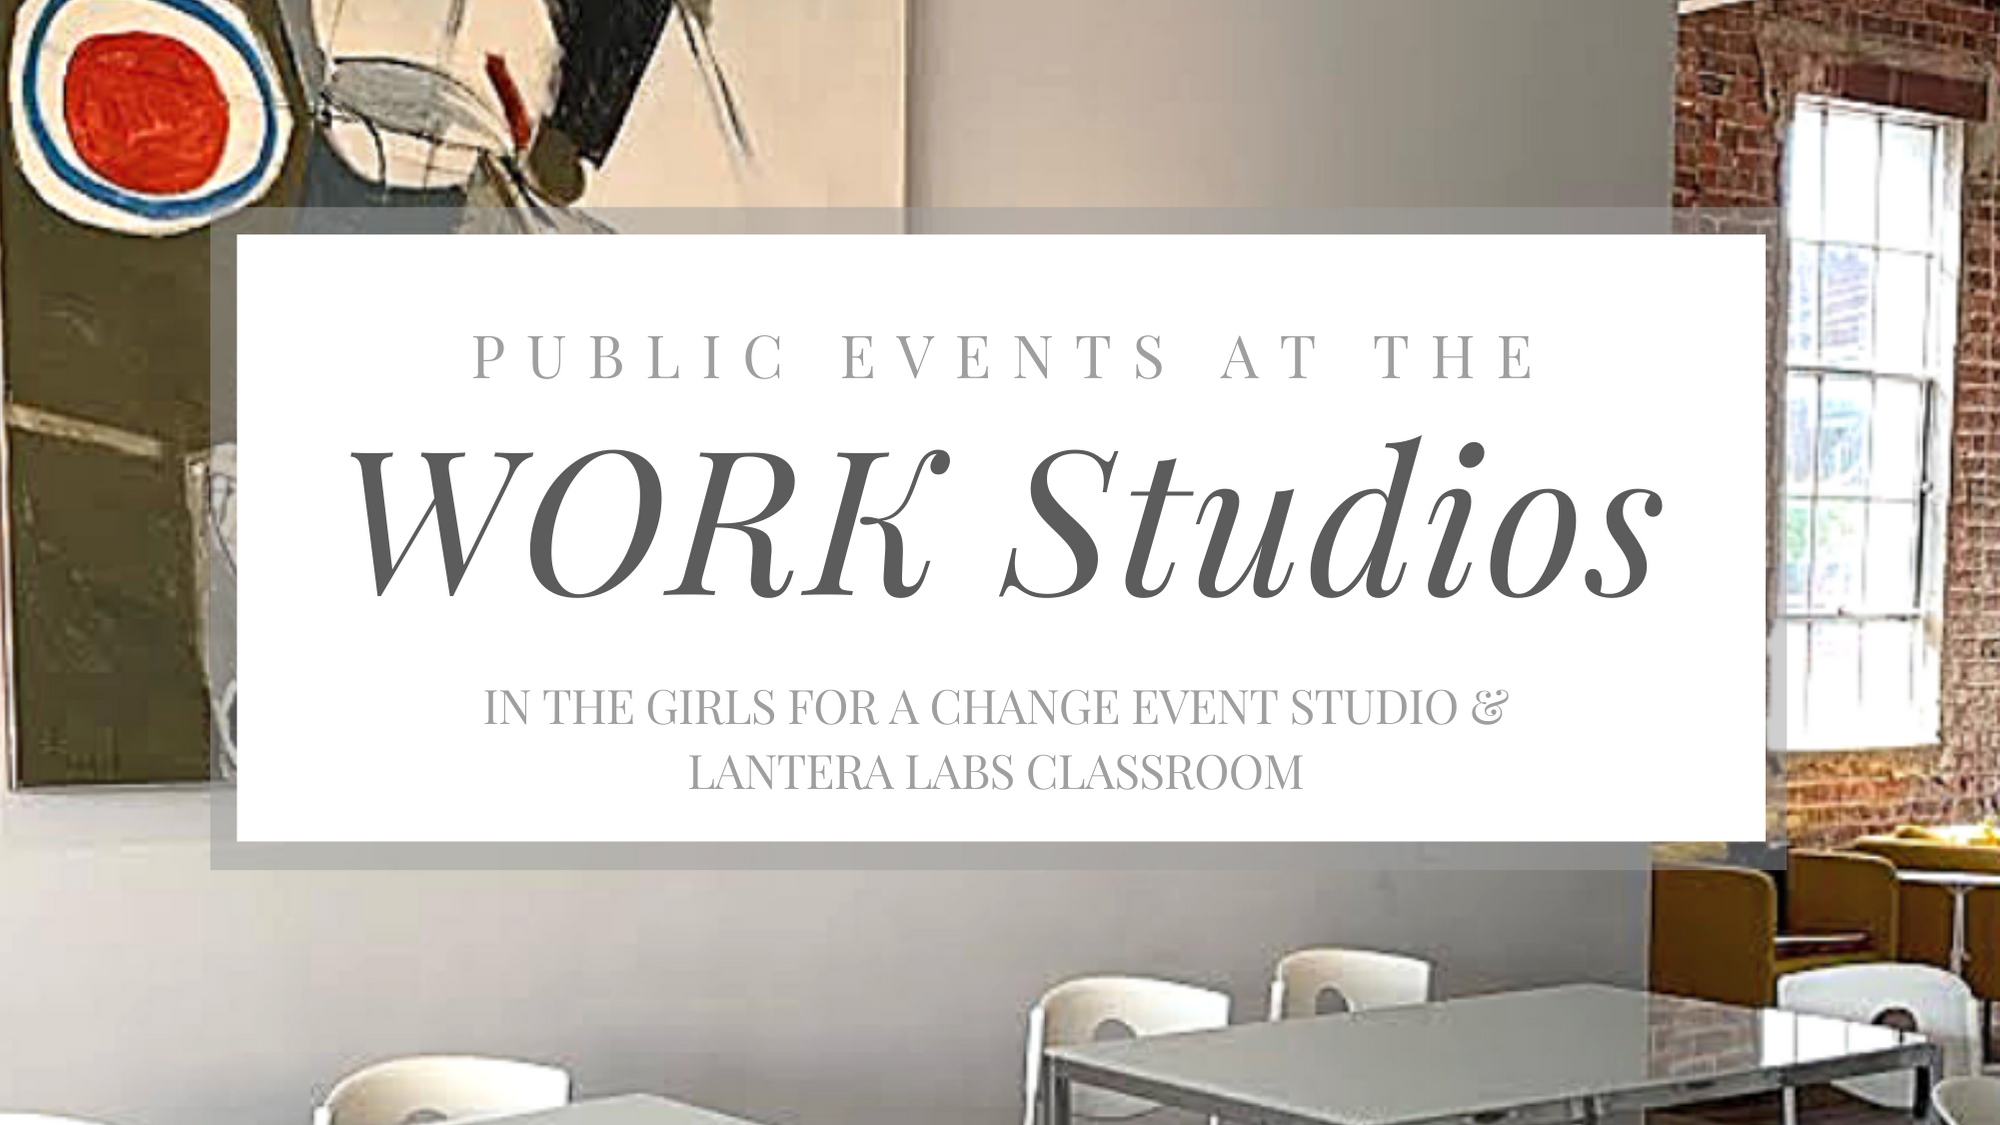 Public Events at WORK Studios